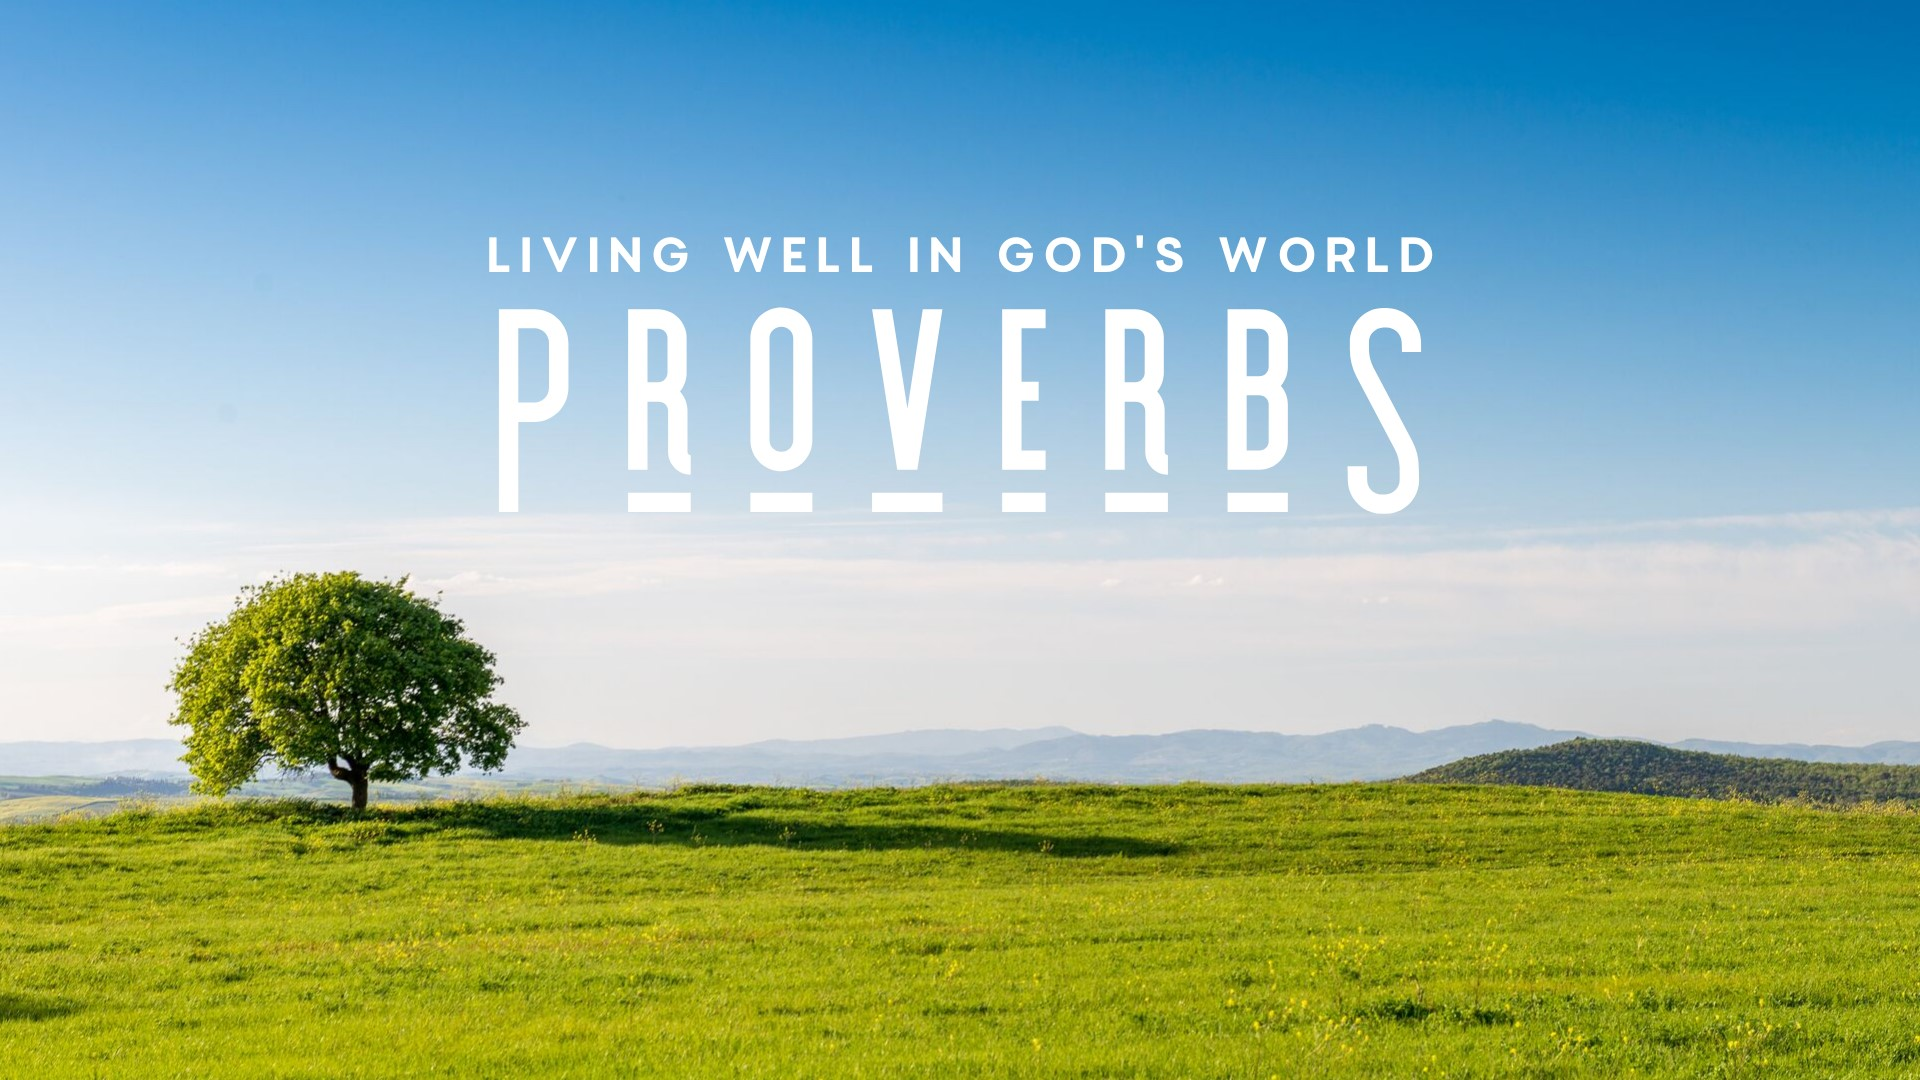 Proverbs – Living well in God's world